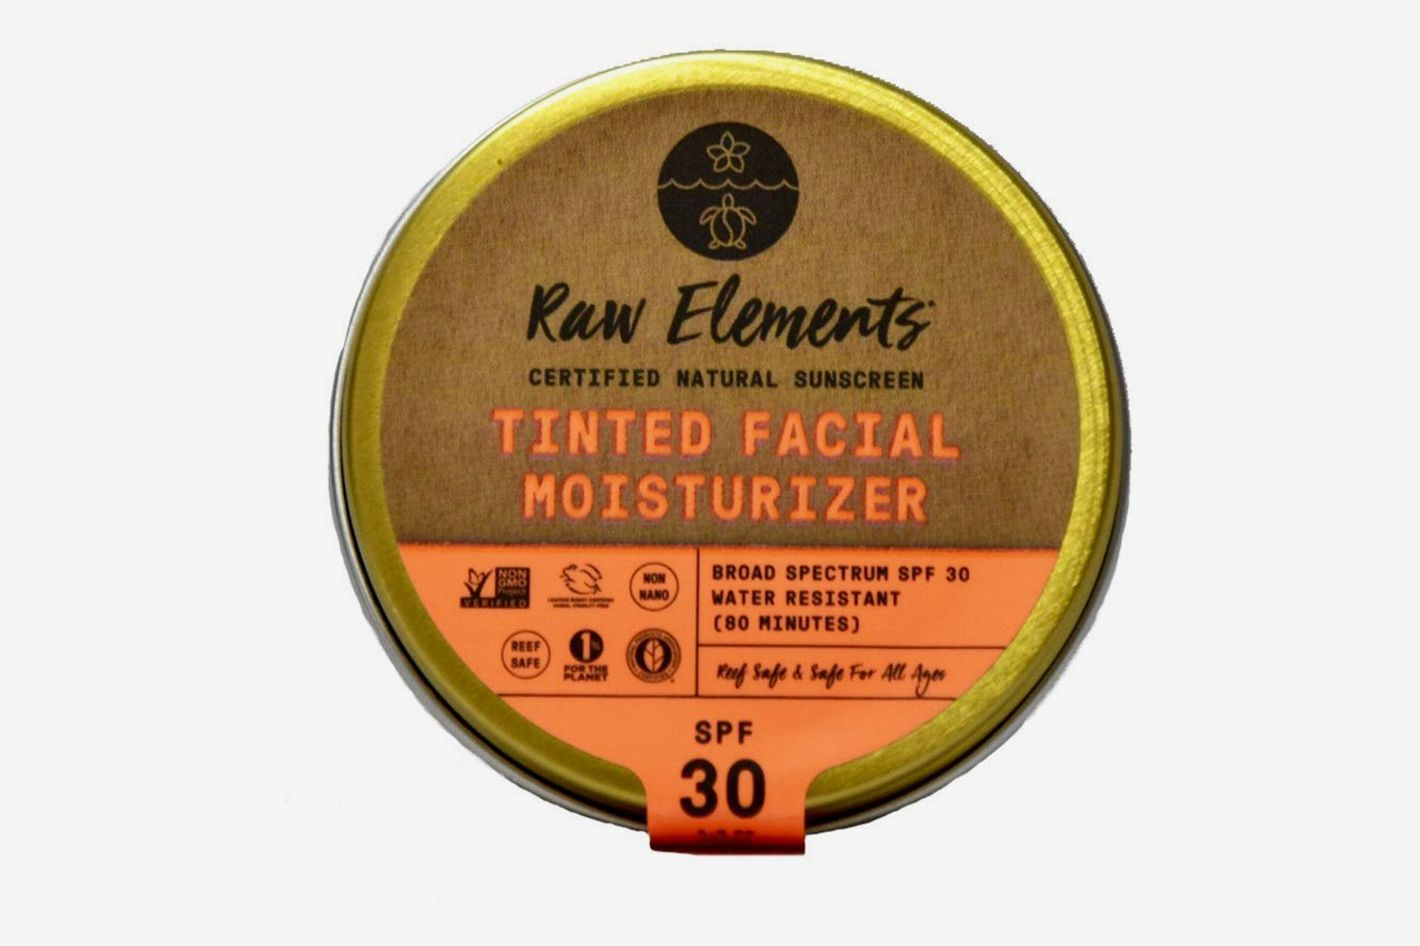 Raw Elements Tinted Facial Moisturizer Certified Natural Sunscreen